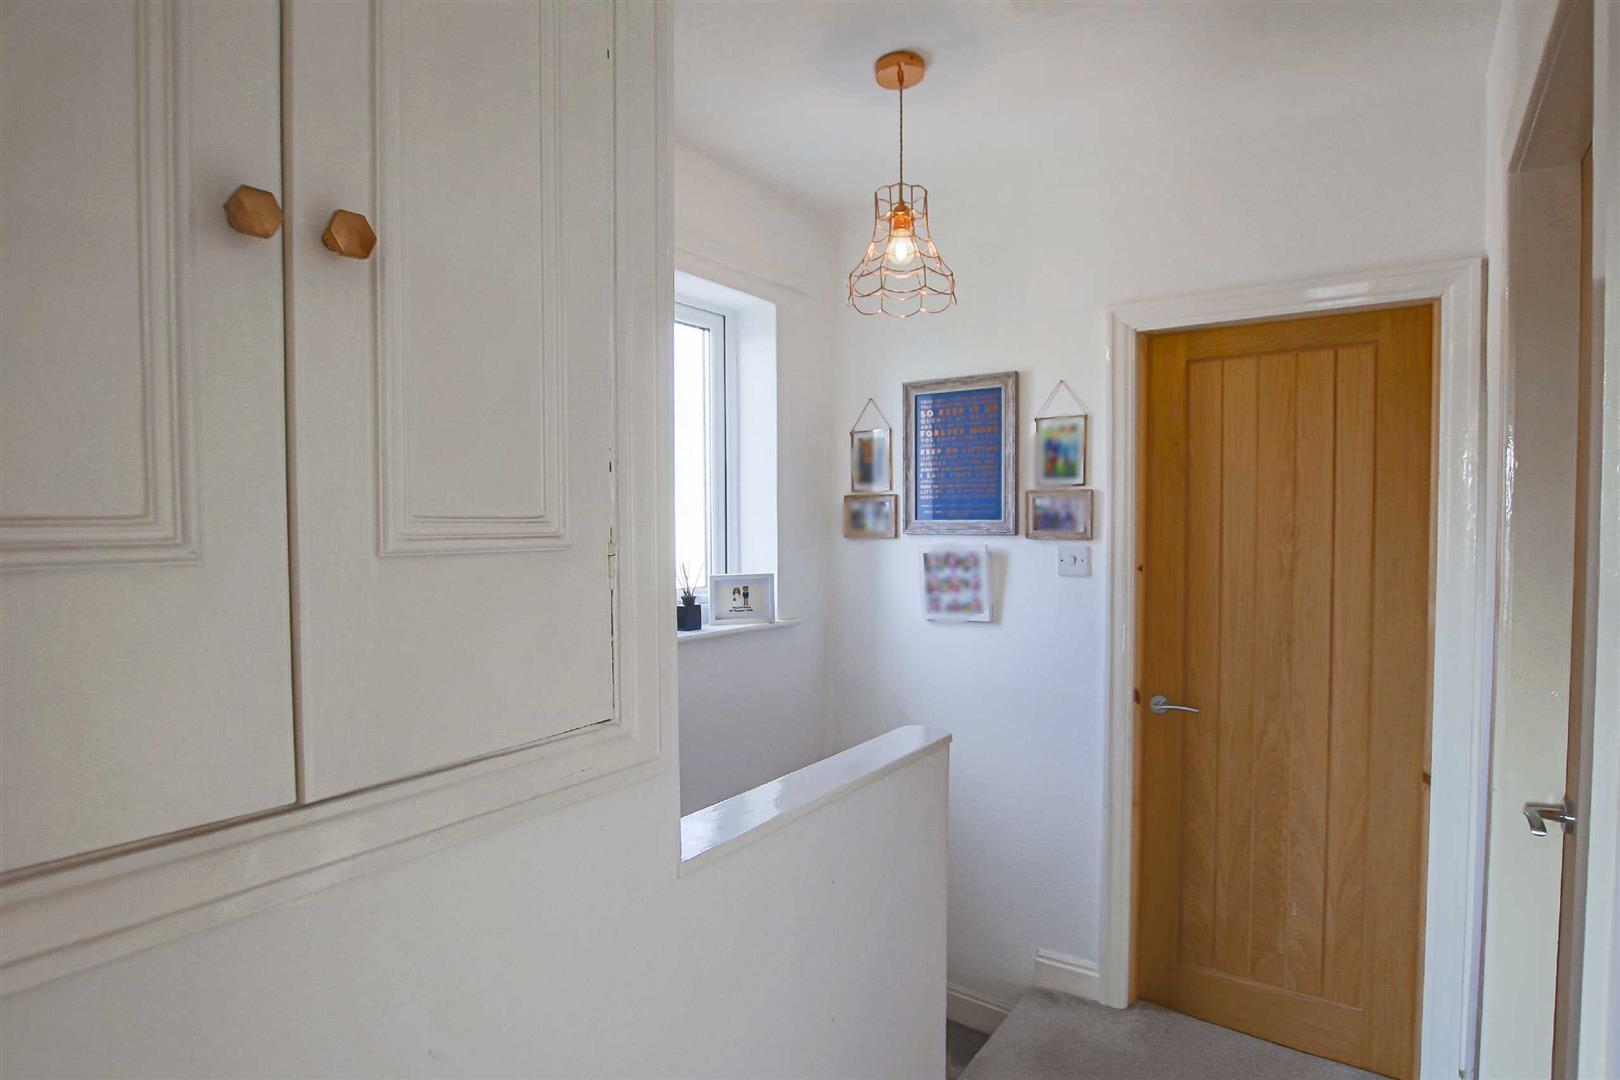 3 Bedroom Semi-detached House For Sale - Image 20